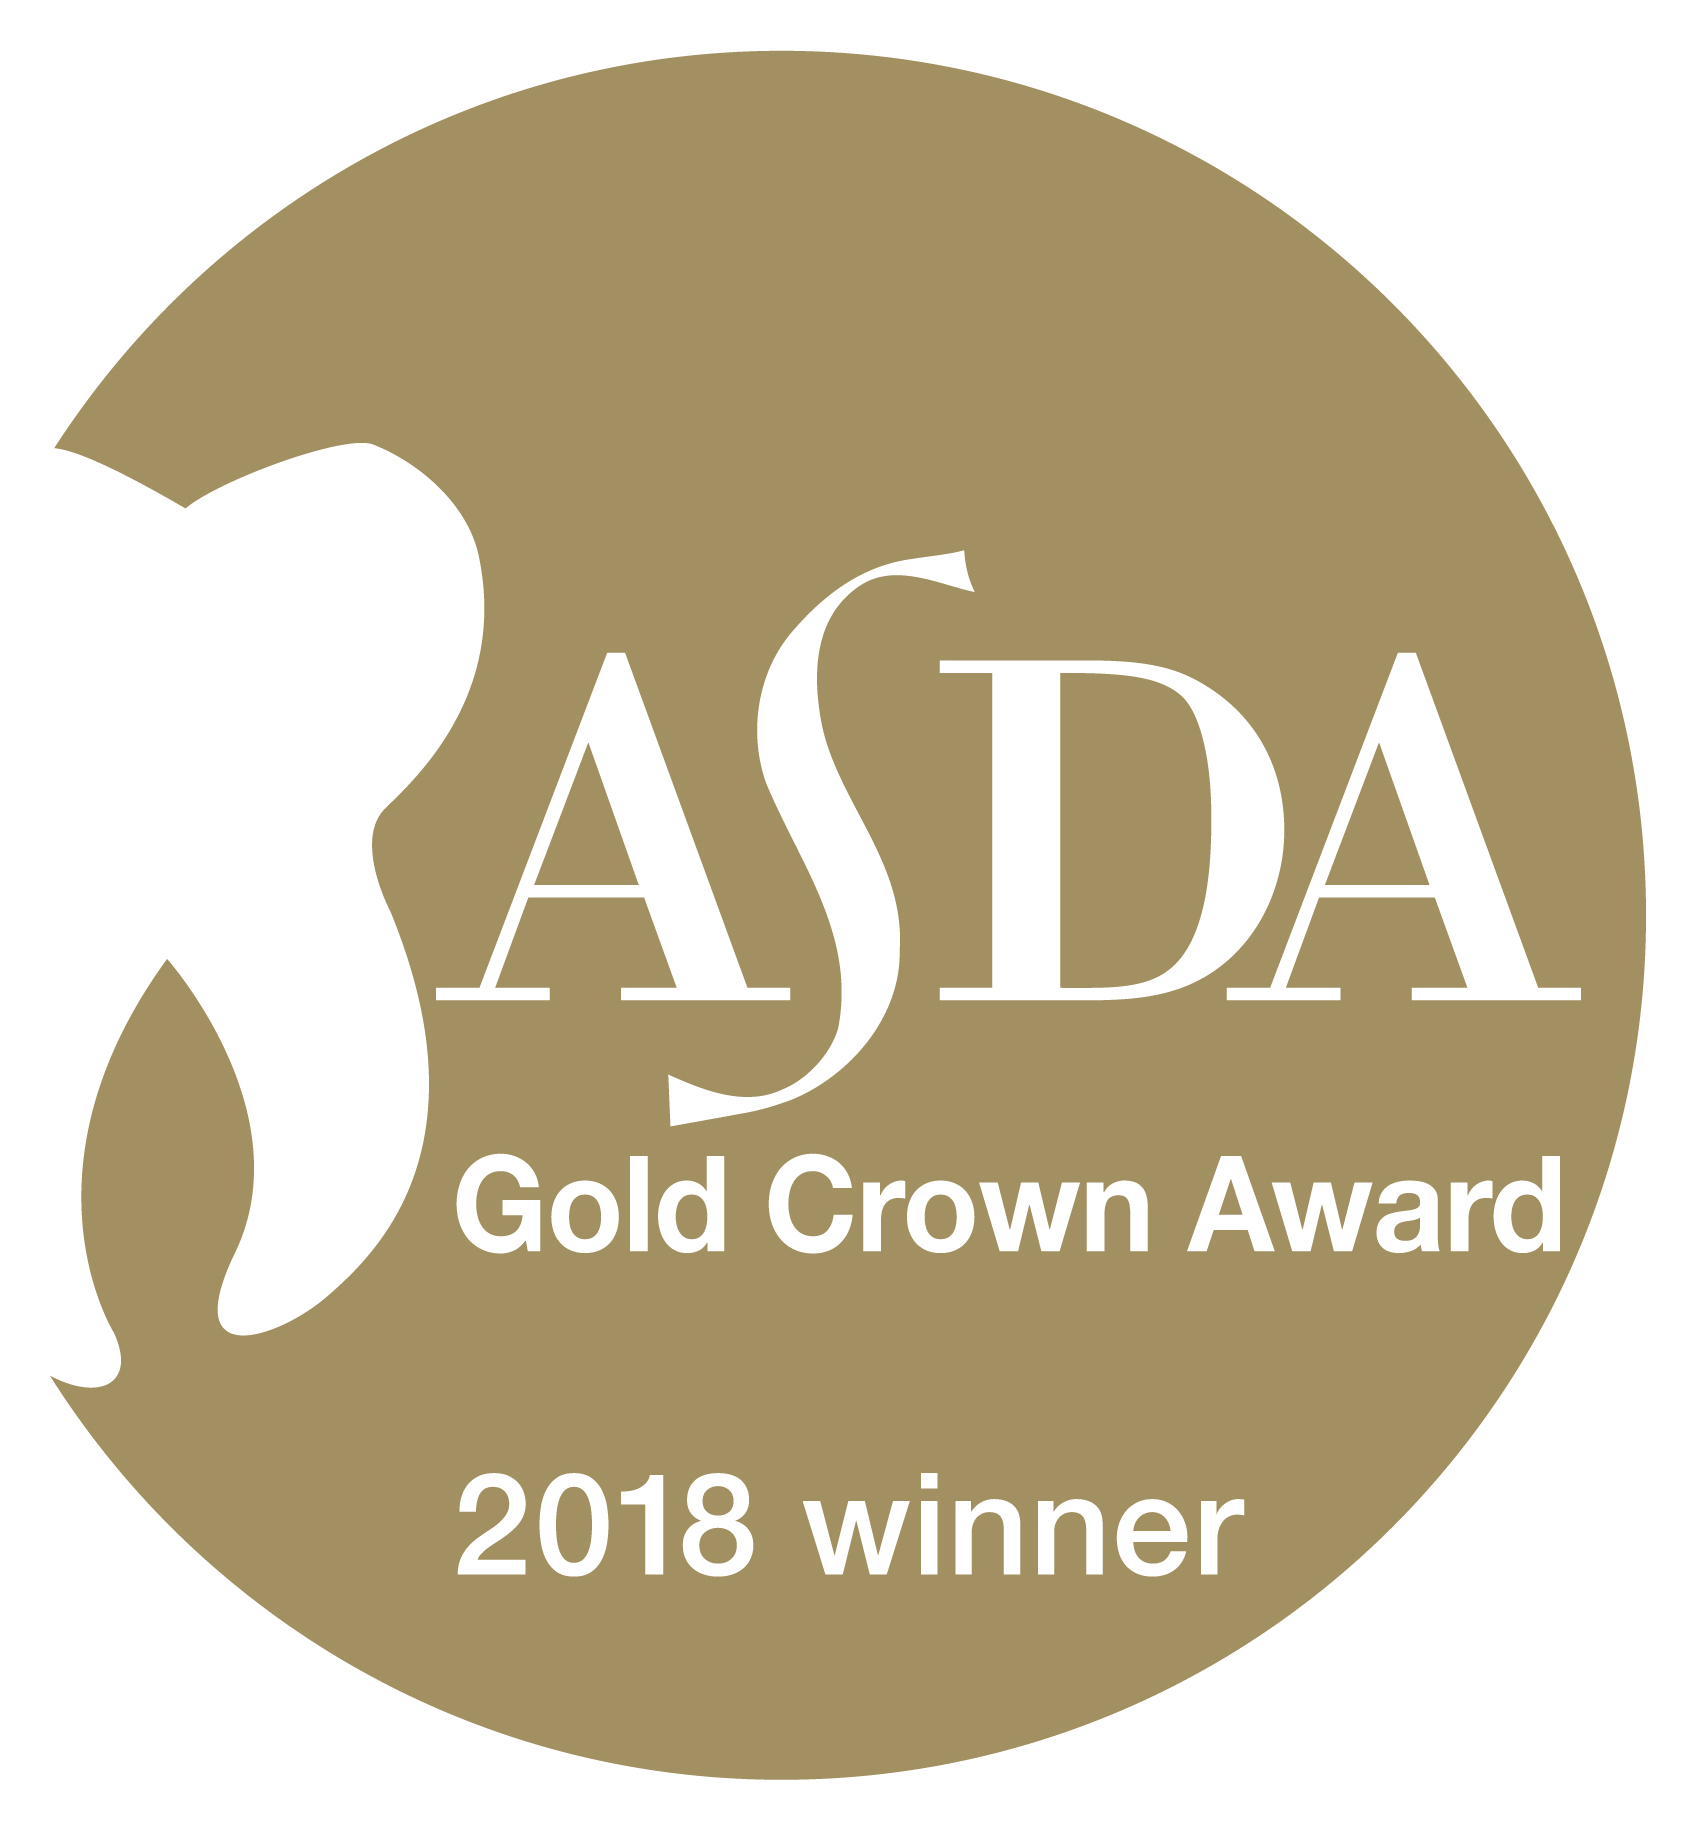 We are proud recipients of the ASDA Gold Crown Award for our newsletter! -